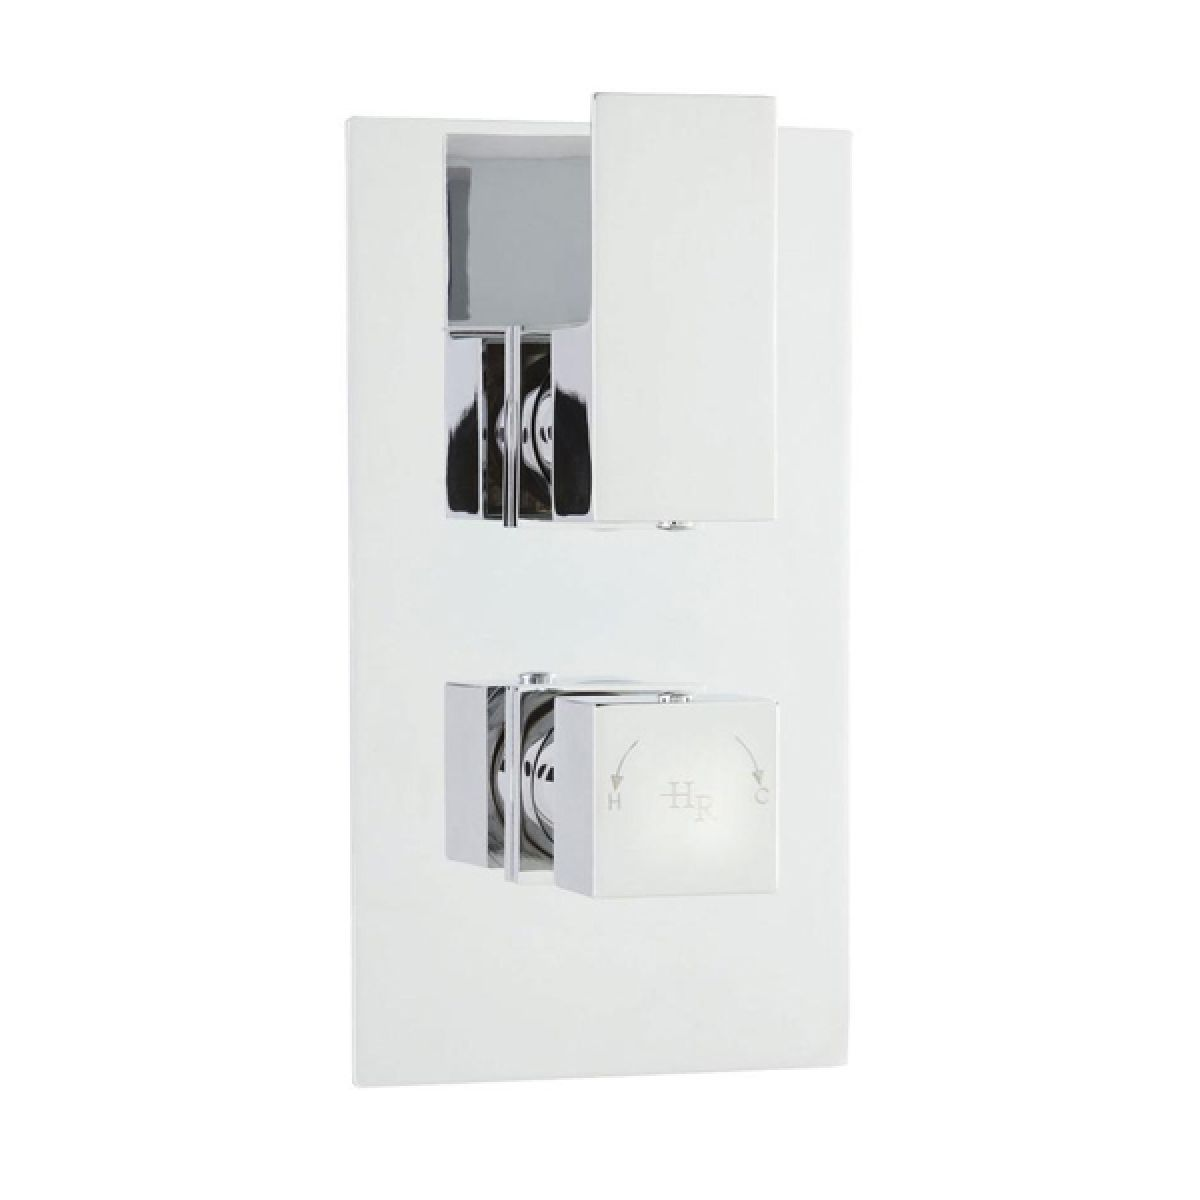 Hudson Reed Art Twin Thermostatic Shower Valve